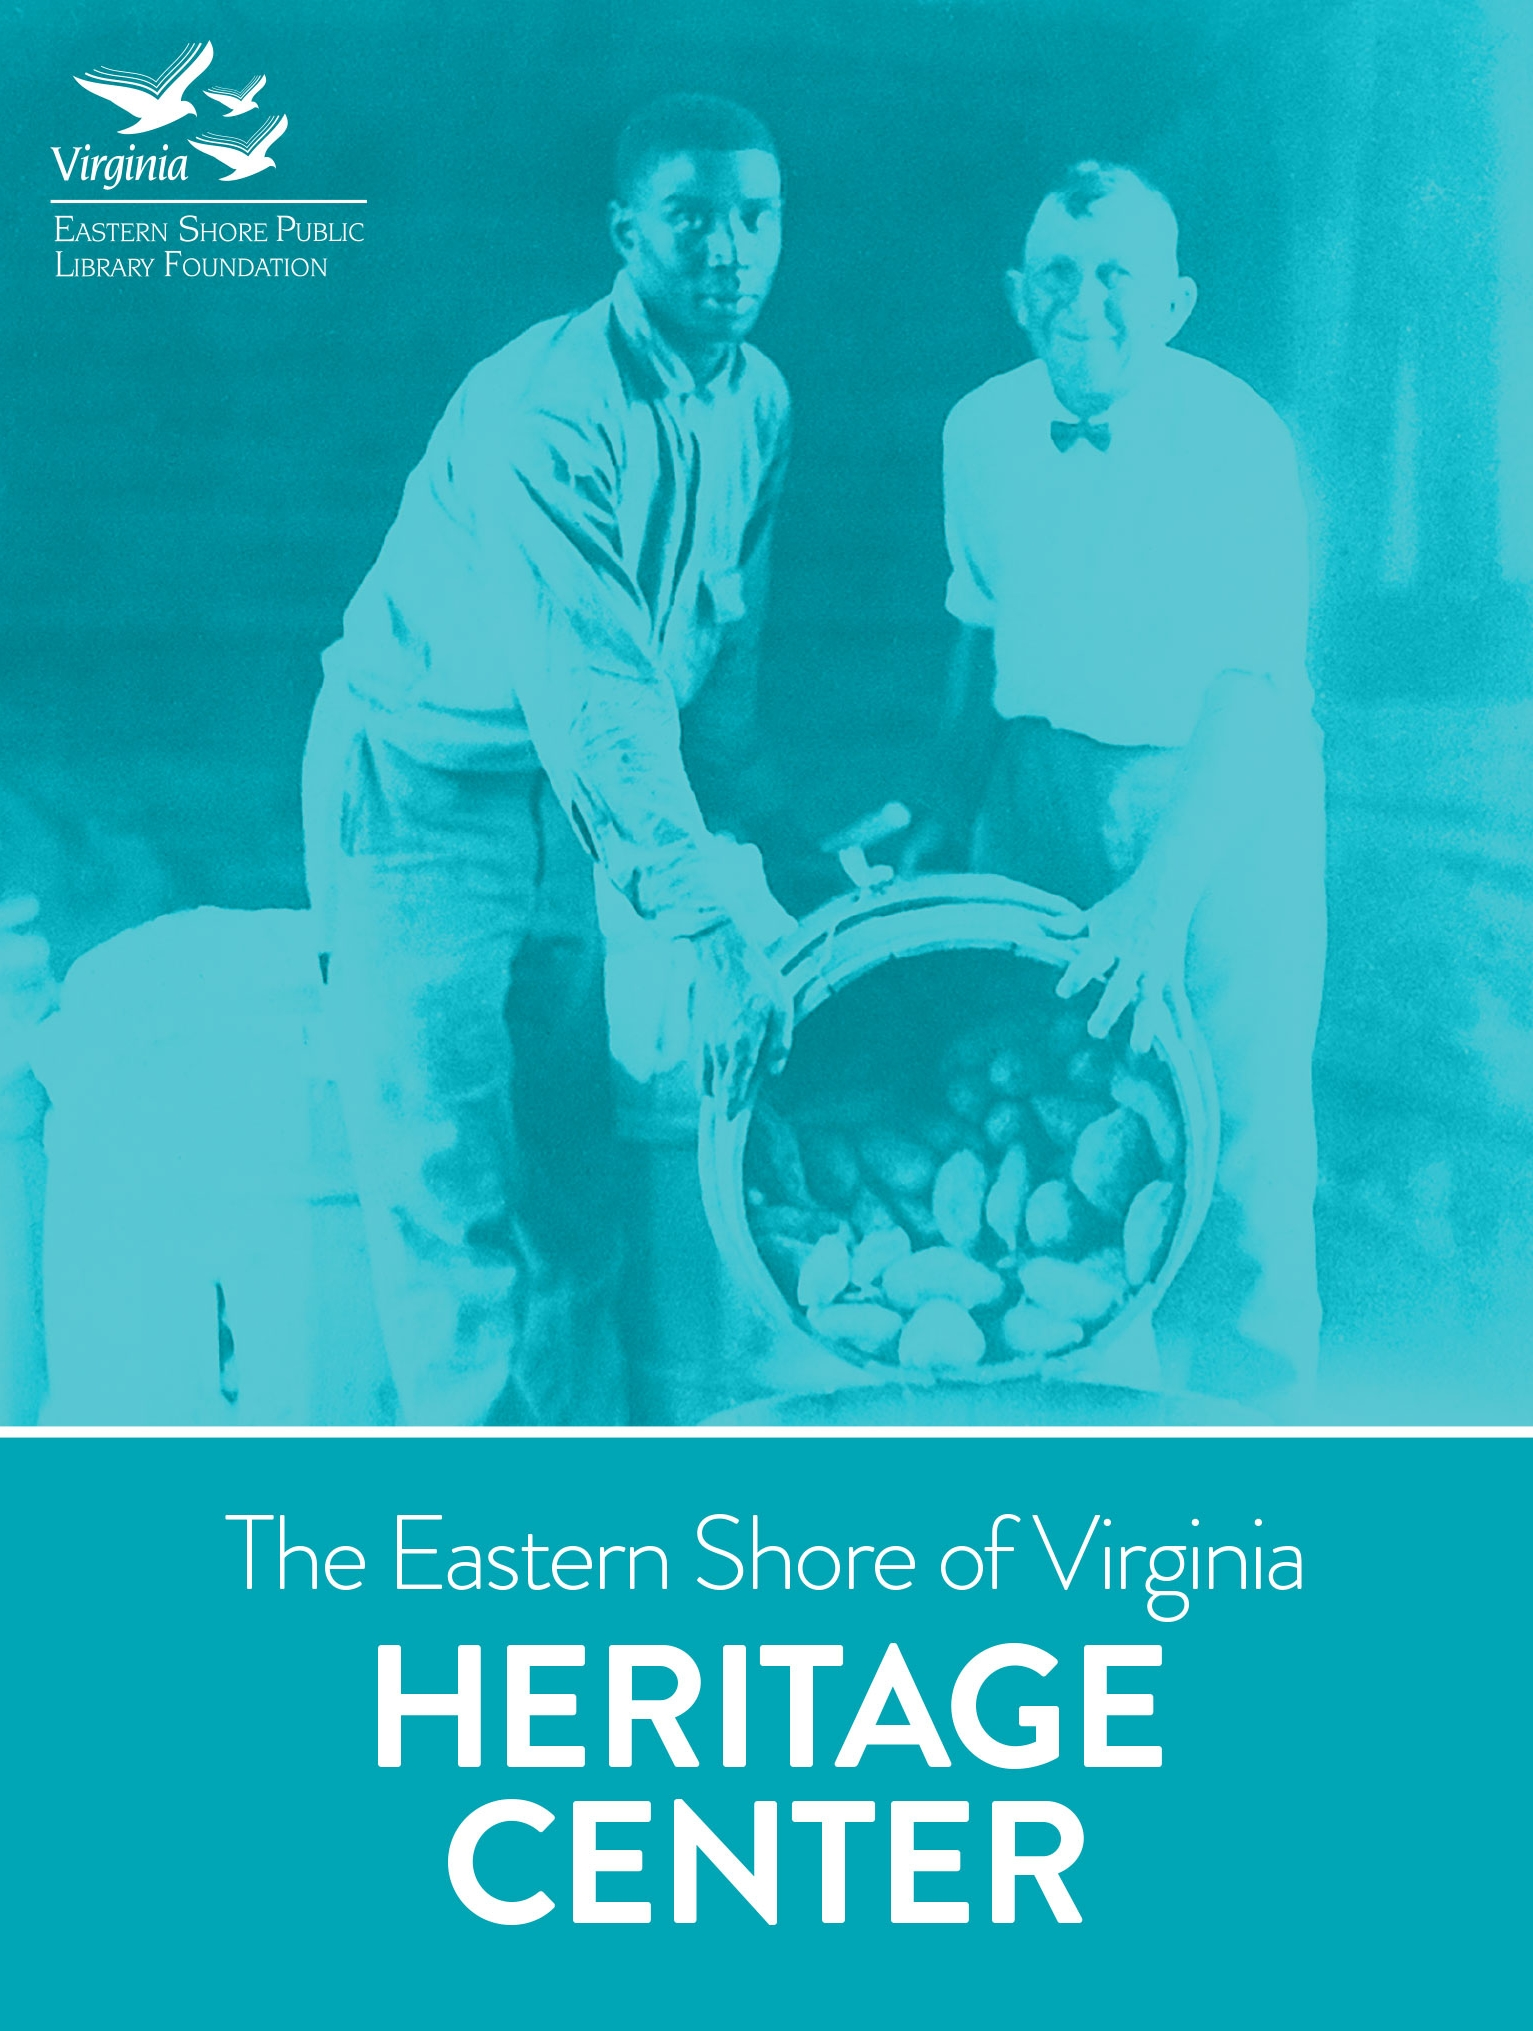 Heritage-Case-for-Support-cover-page.jpg